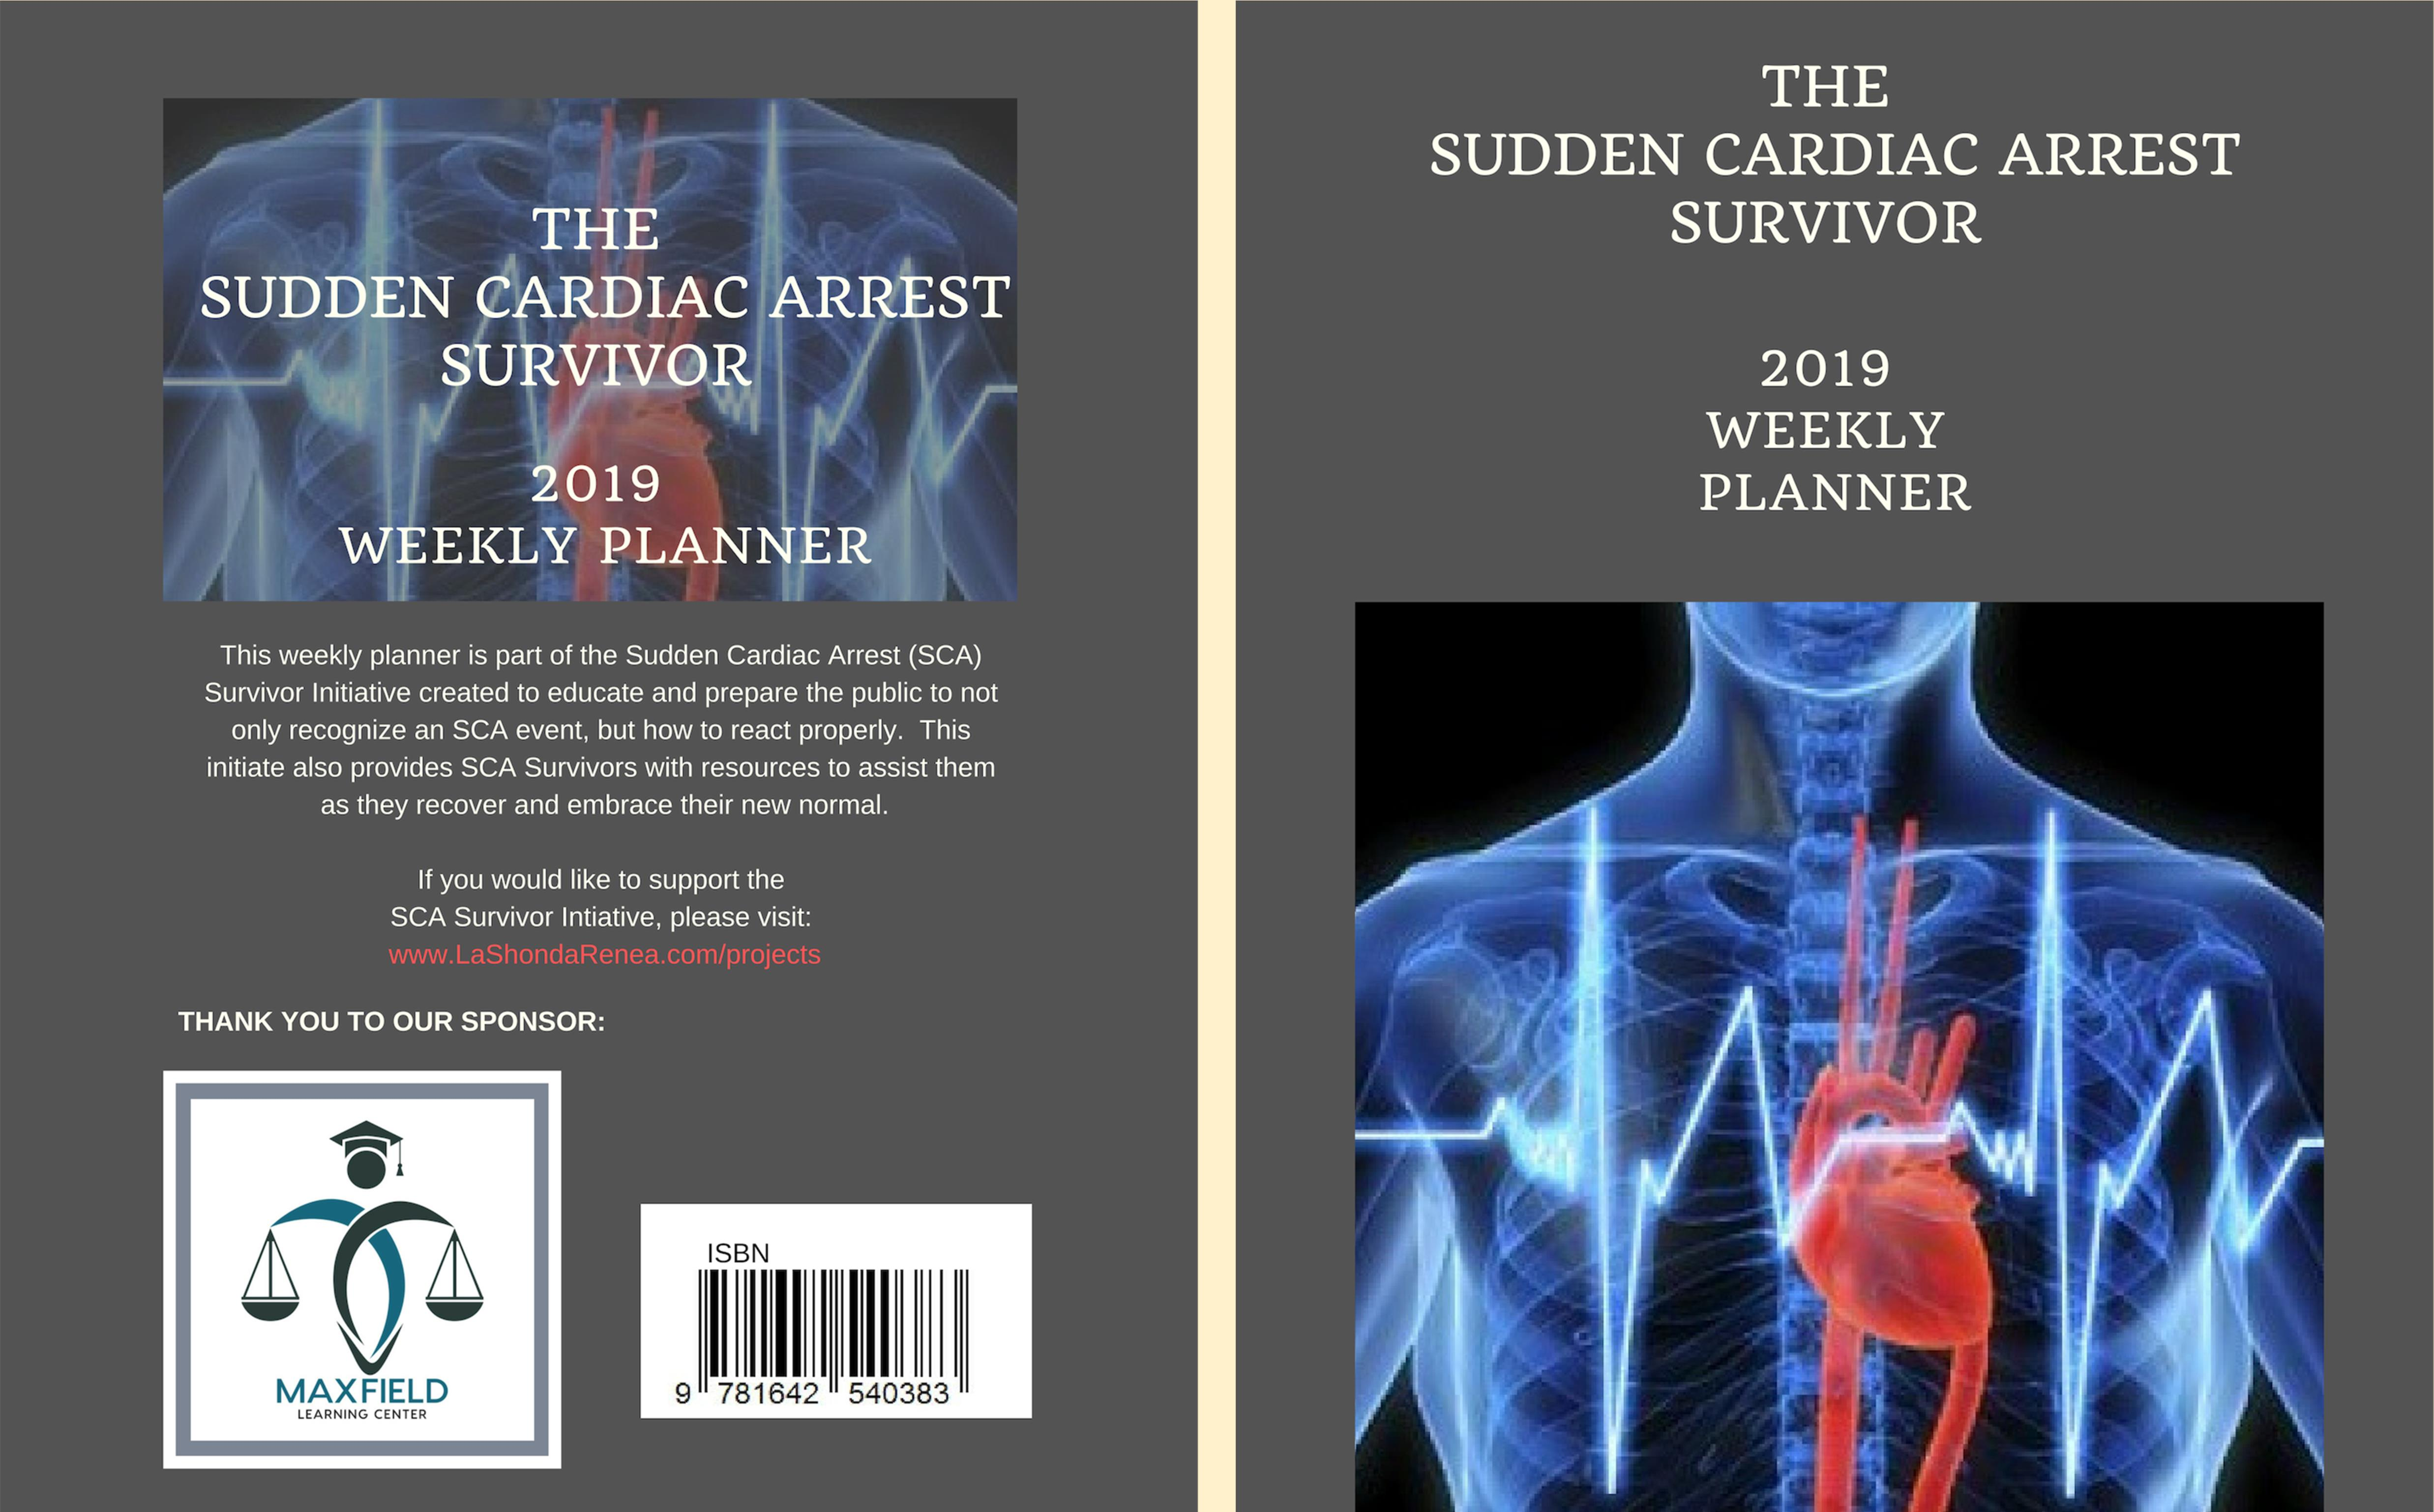 The Sudden Cardiac Arrest Survivor 2019 Weekly Planner cover image